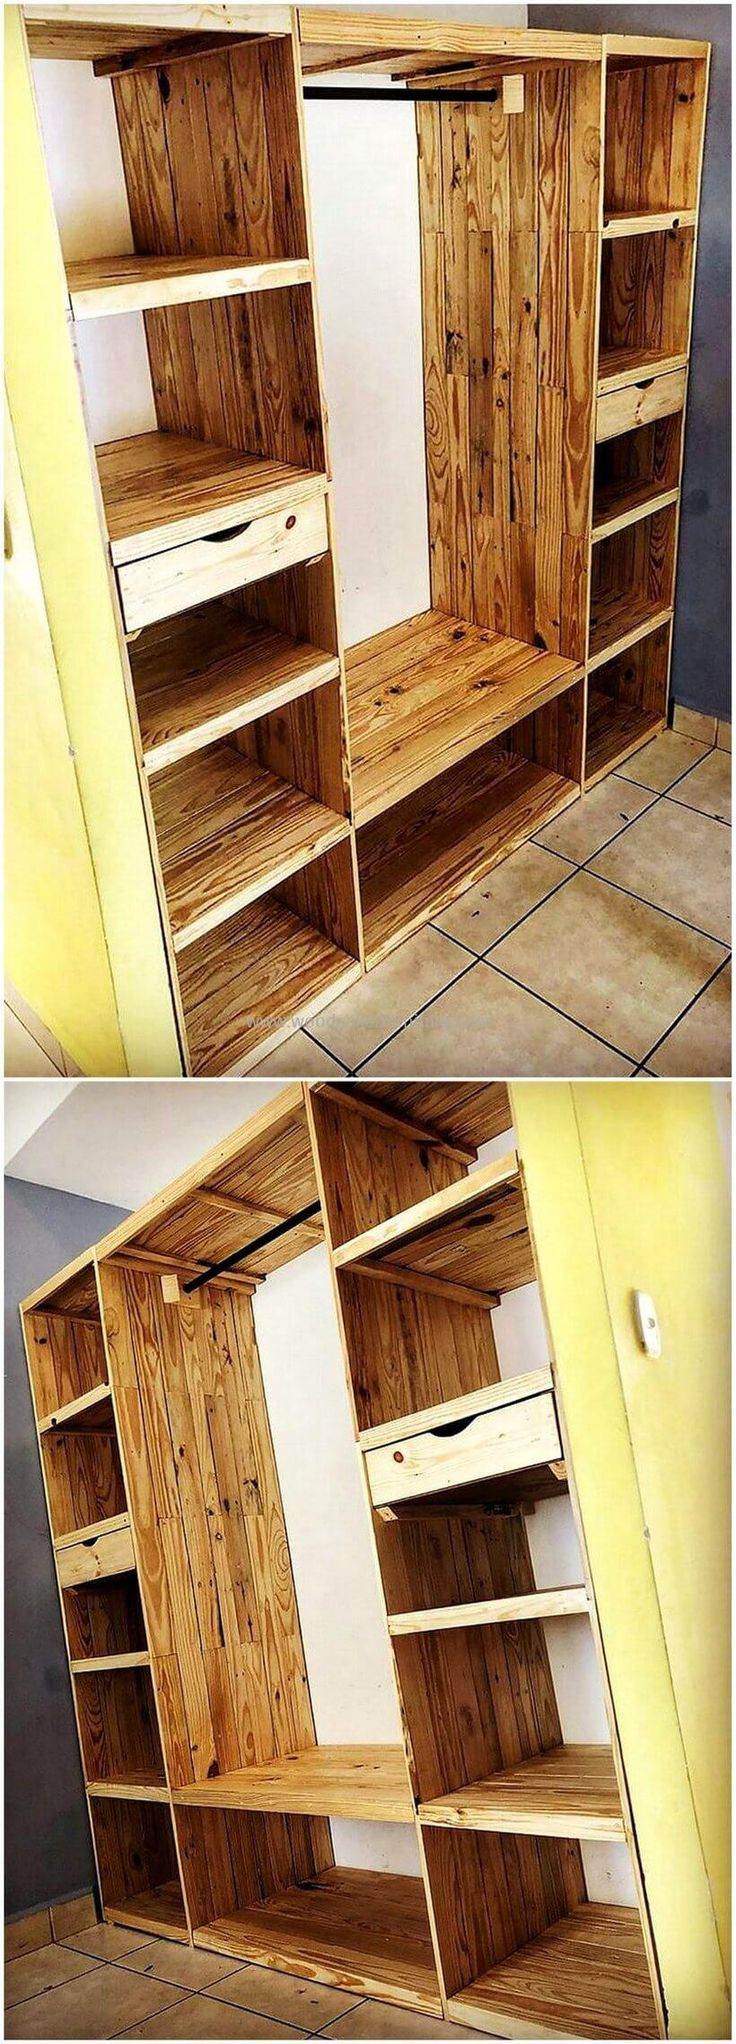 Are you looking for the best wooden structure with large storage space in it, then simply craft this awesome wooden pallet wardrobe design. This wardrobe will definitely provide you enough storing and placing space in it and will surely increase the beauty of your place at low-price.